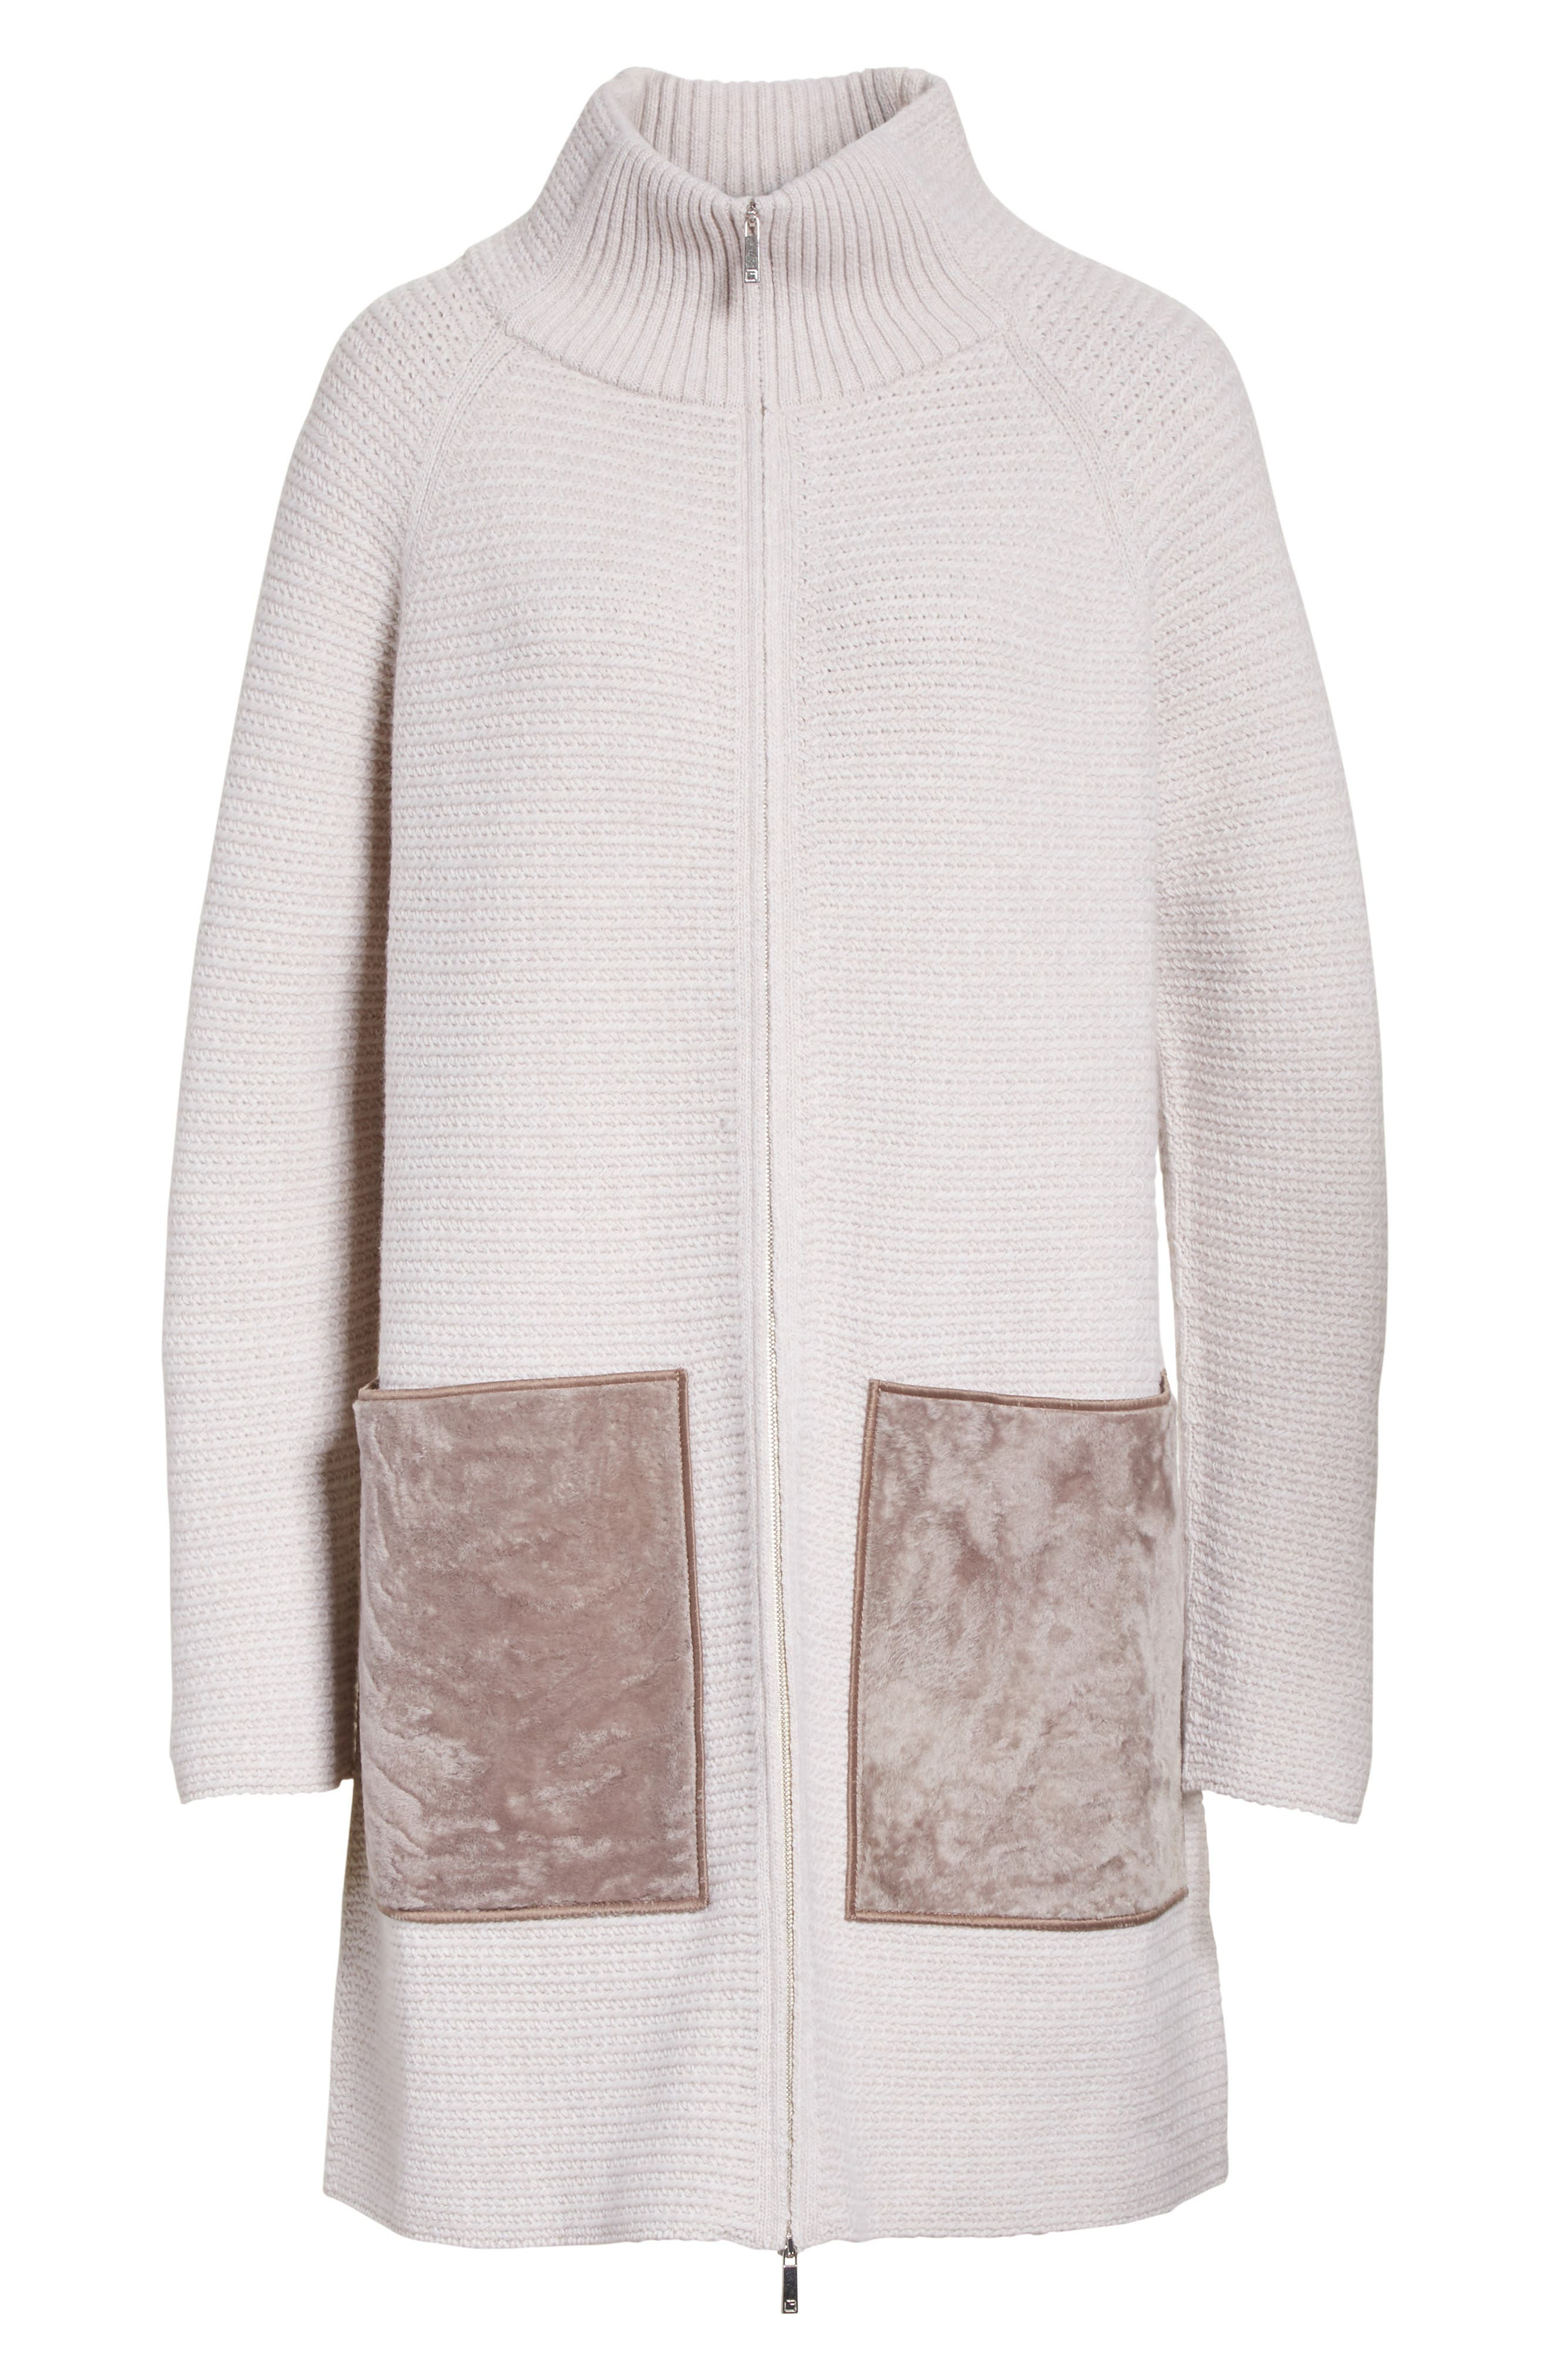 Wool & Cashmere Herringbone Stitch Cardigan with Genuine Shearling Pockets,                             Alternate thumbnail 6, color,